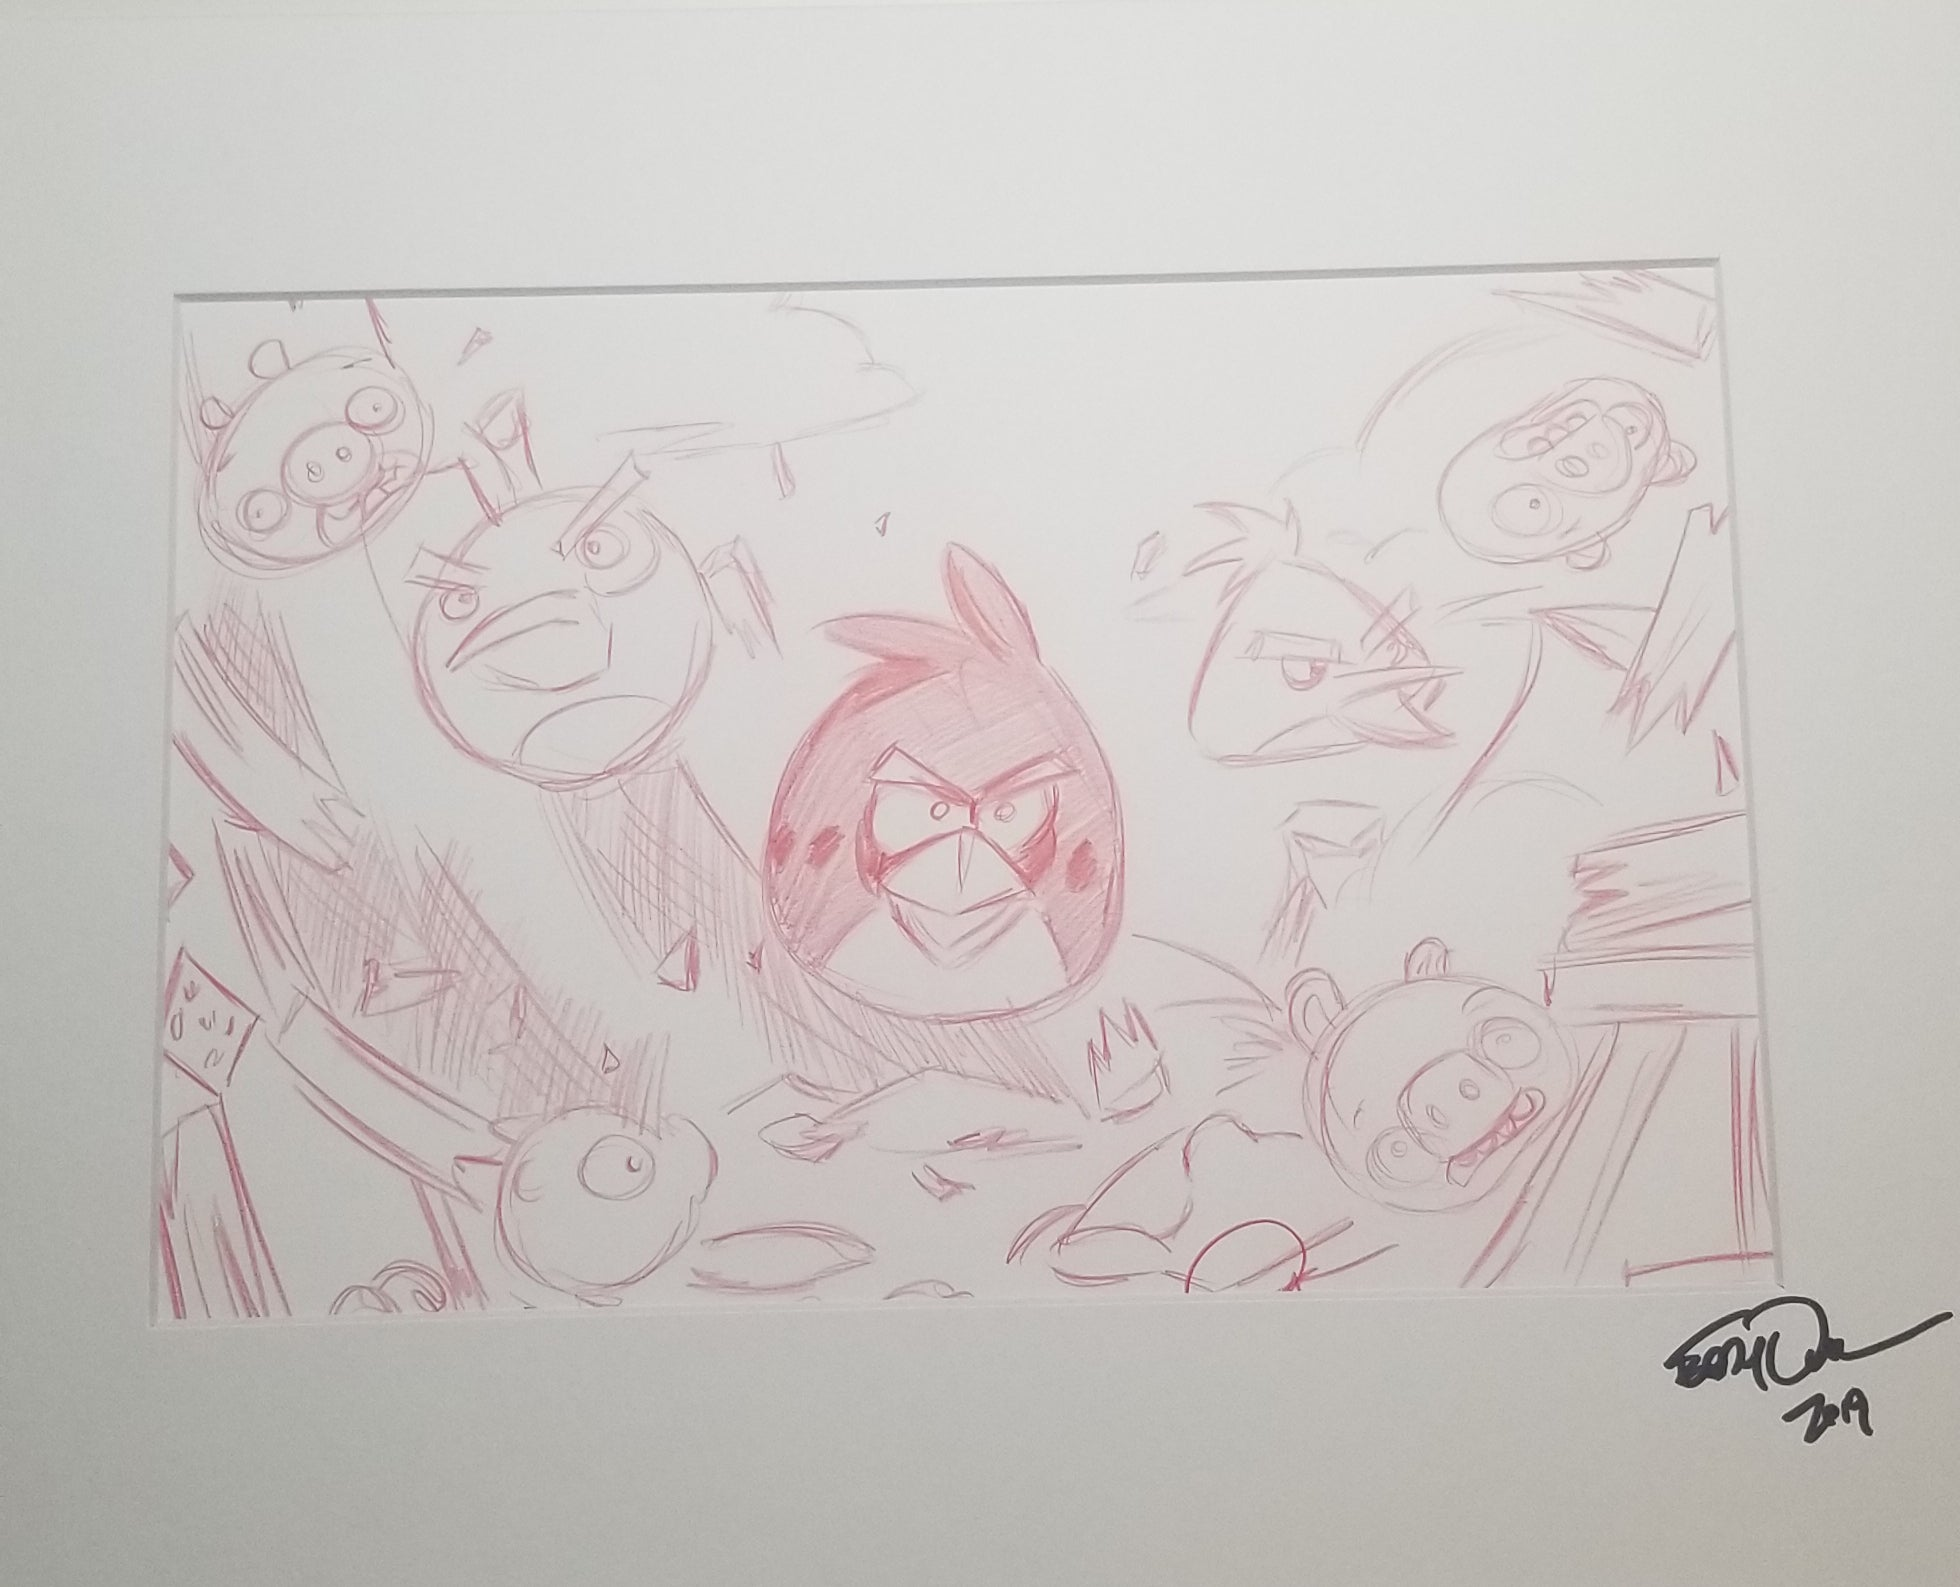 Original Art (Angry Birds Sketch)